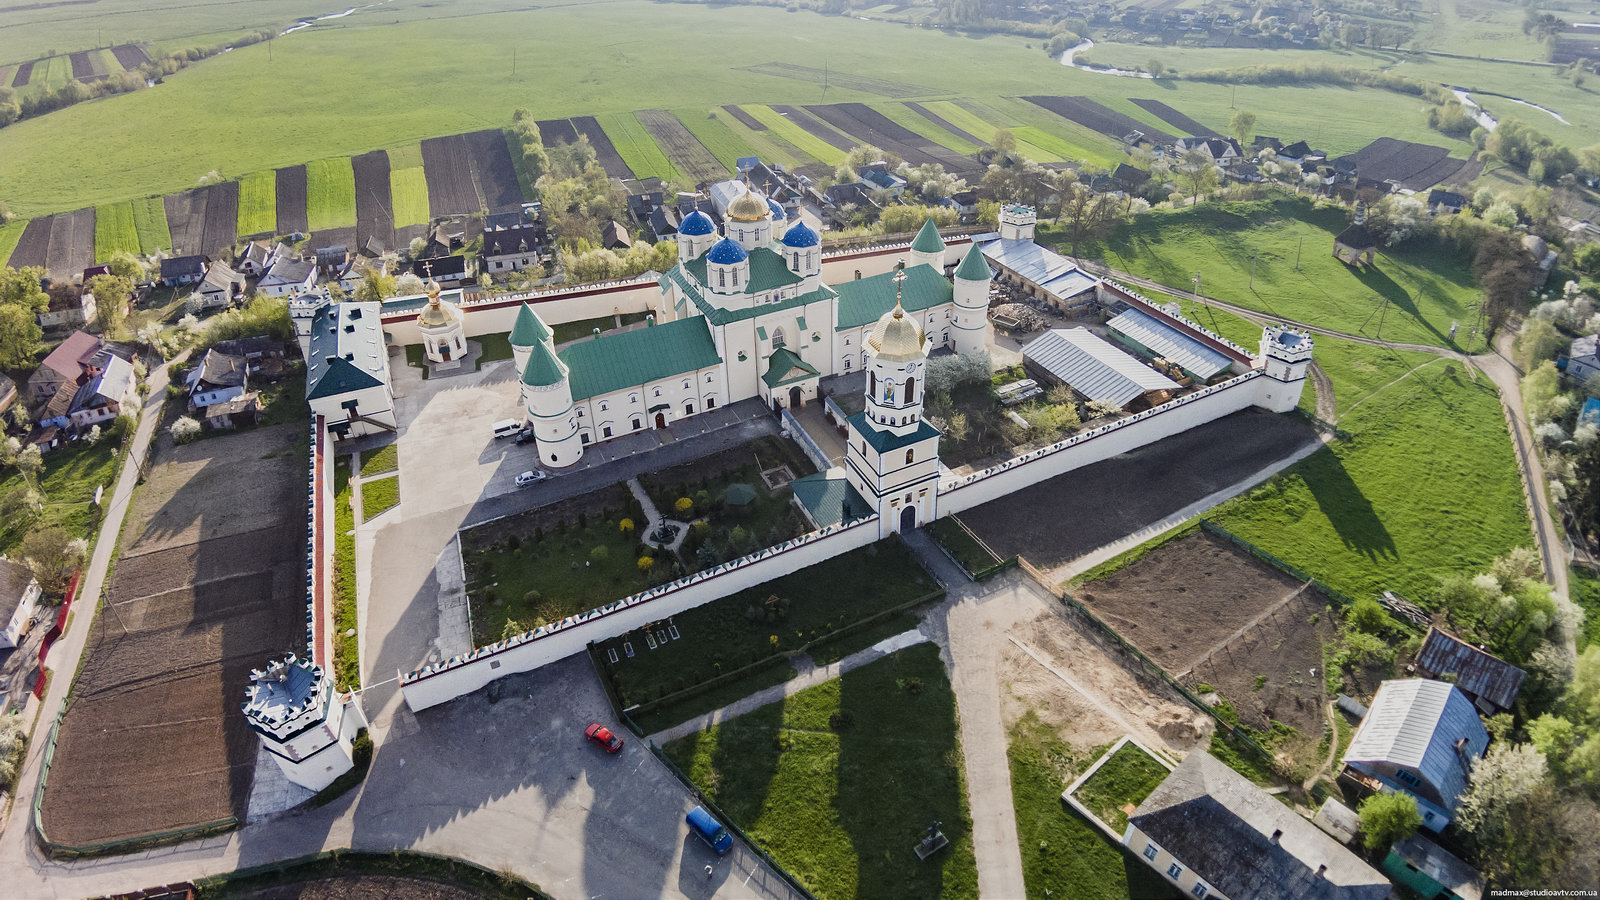 News of Rivne region: a selection of sites